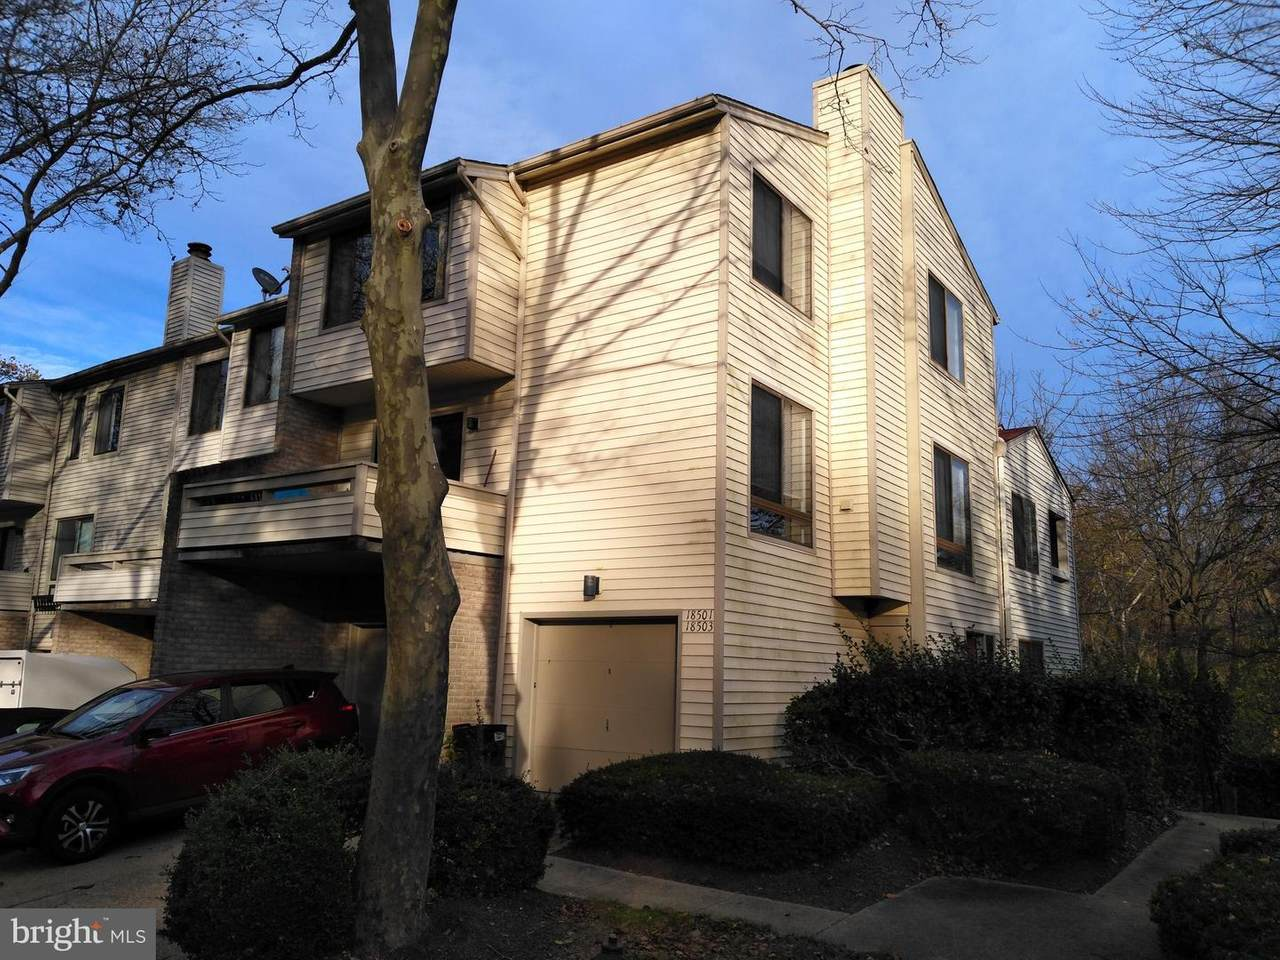 18501 Locust Point Court - Photo 1